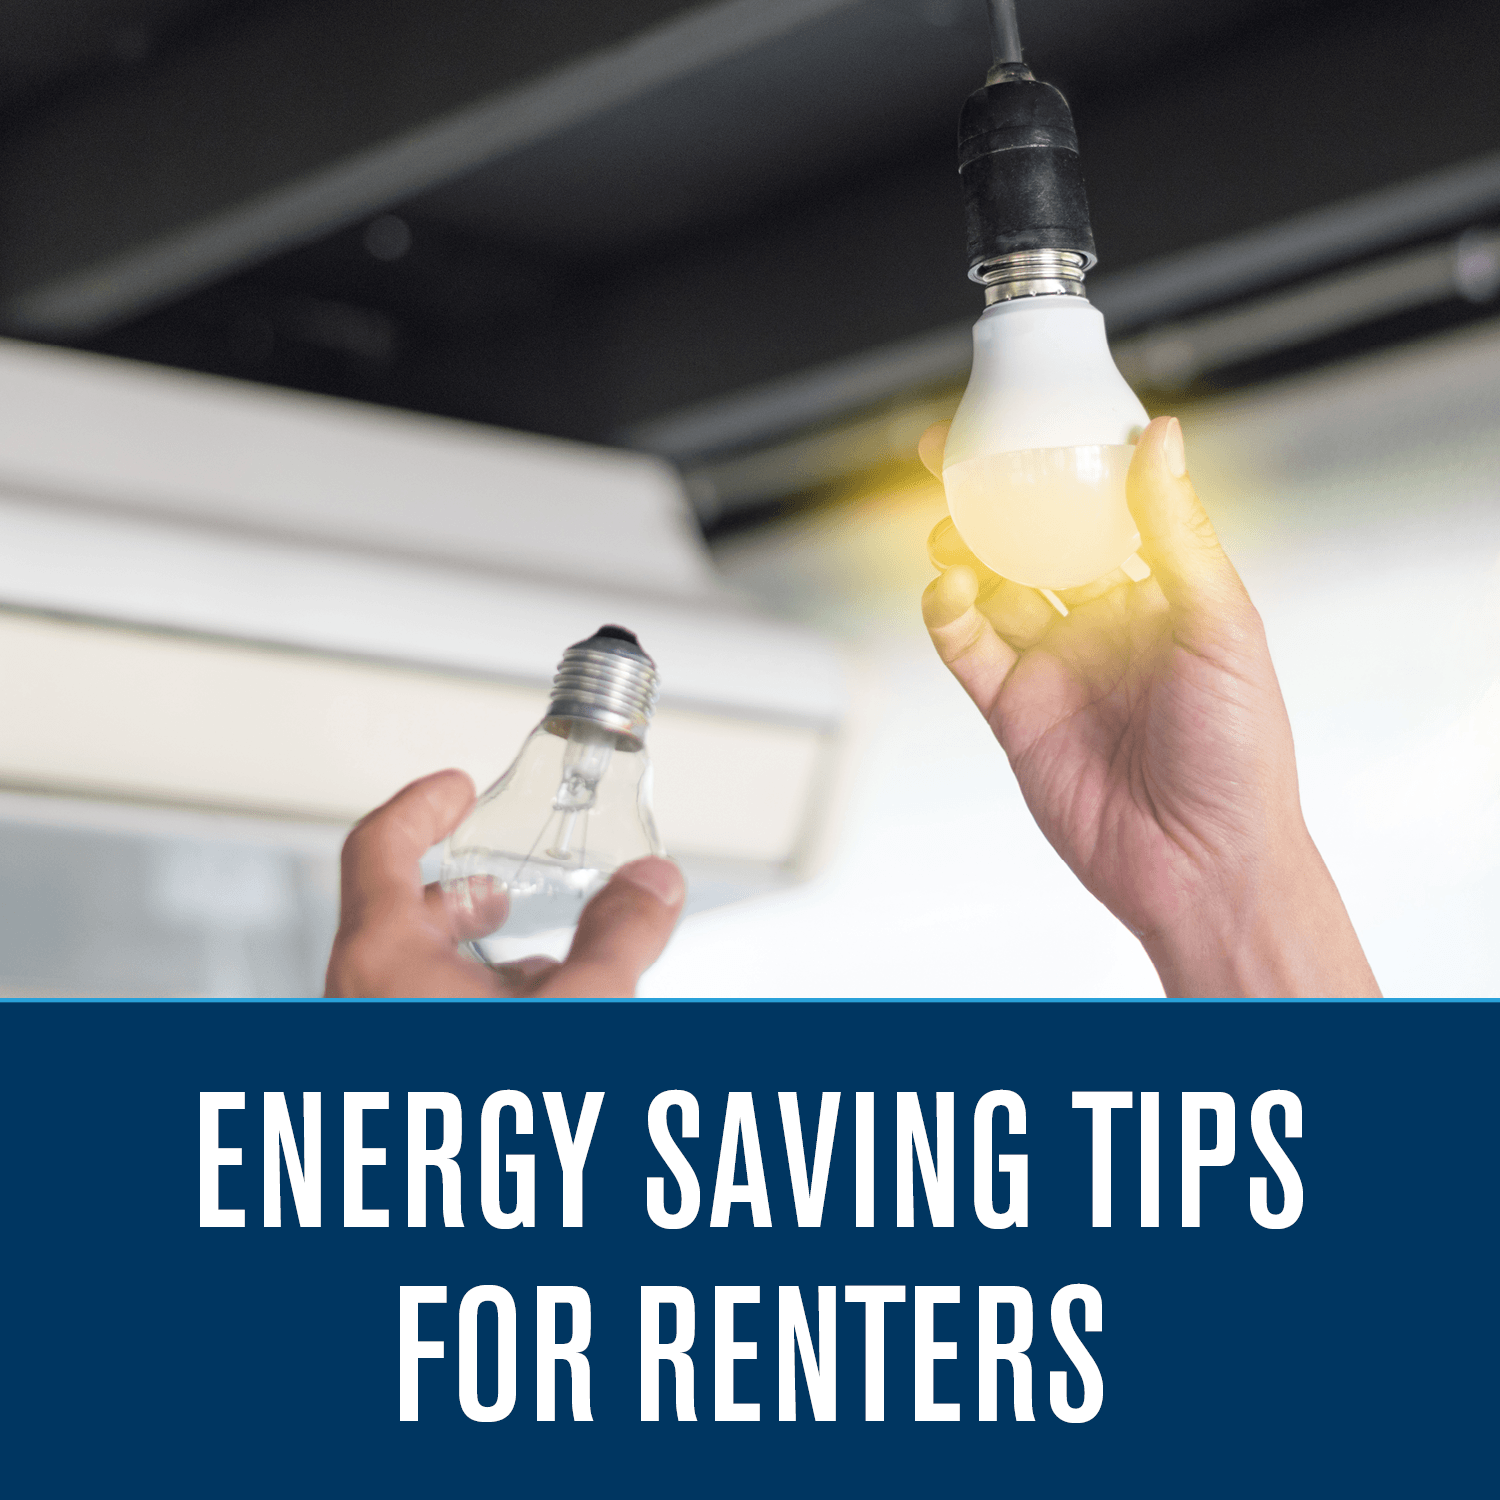 Energy Saving Tips For Renters